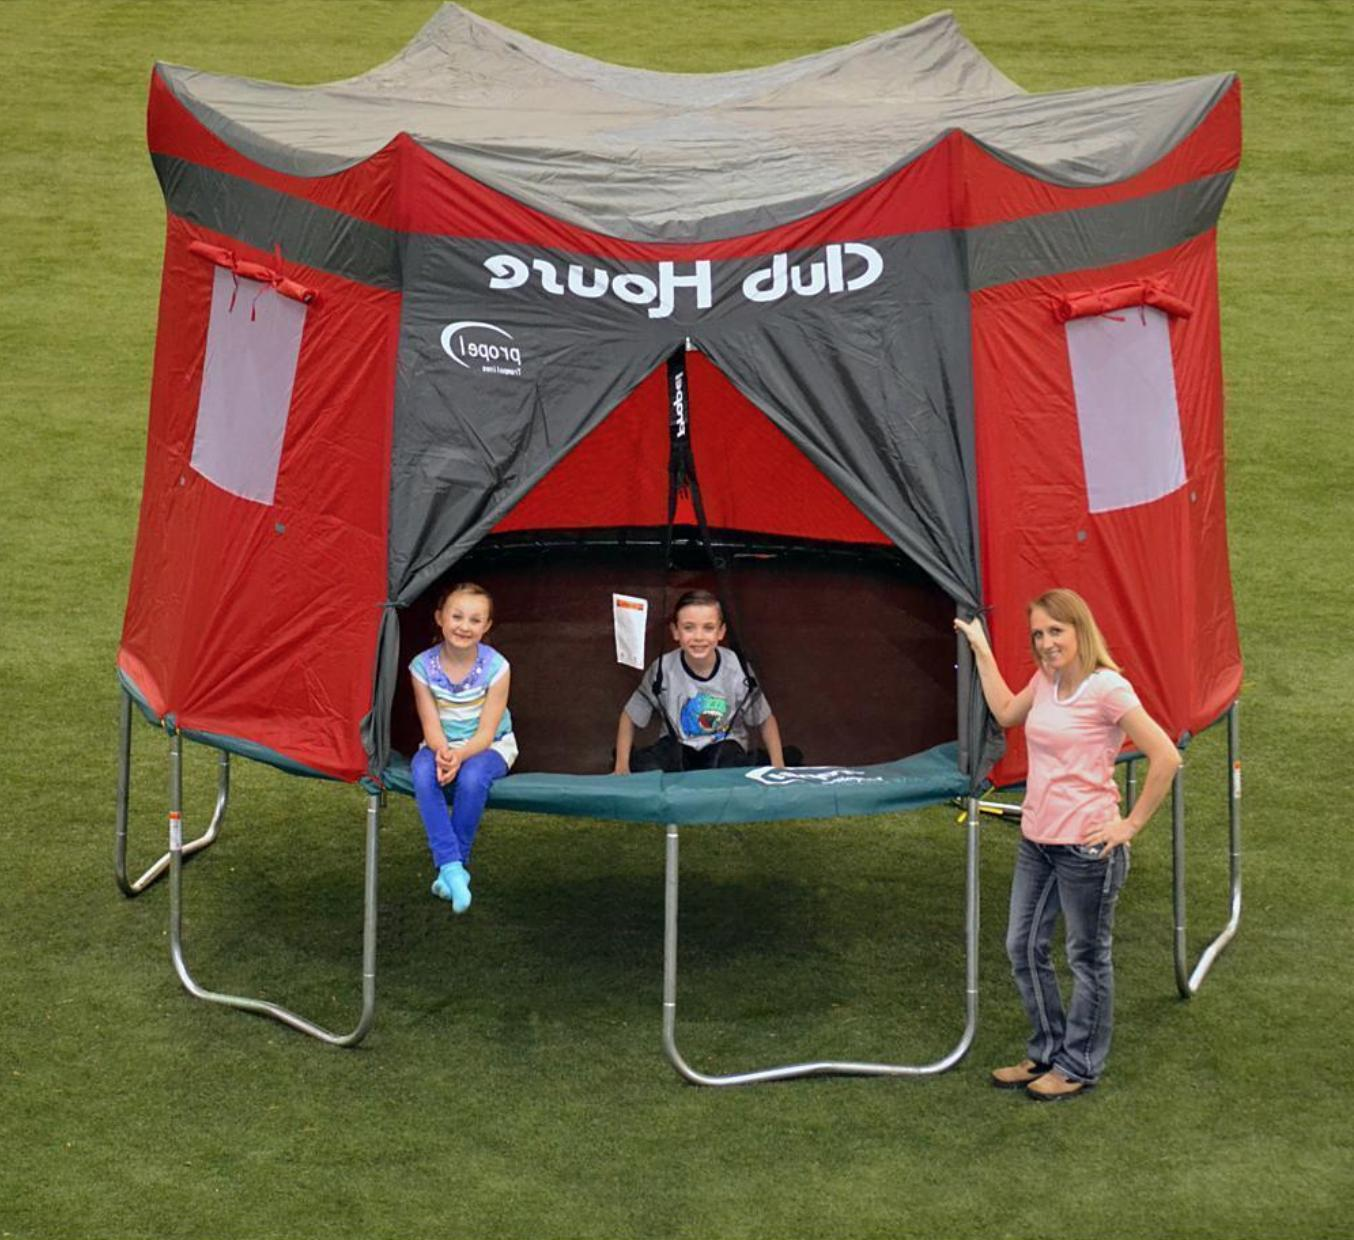 Trampoline Tent For 15 Ft Foot Kinetics Value Quality